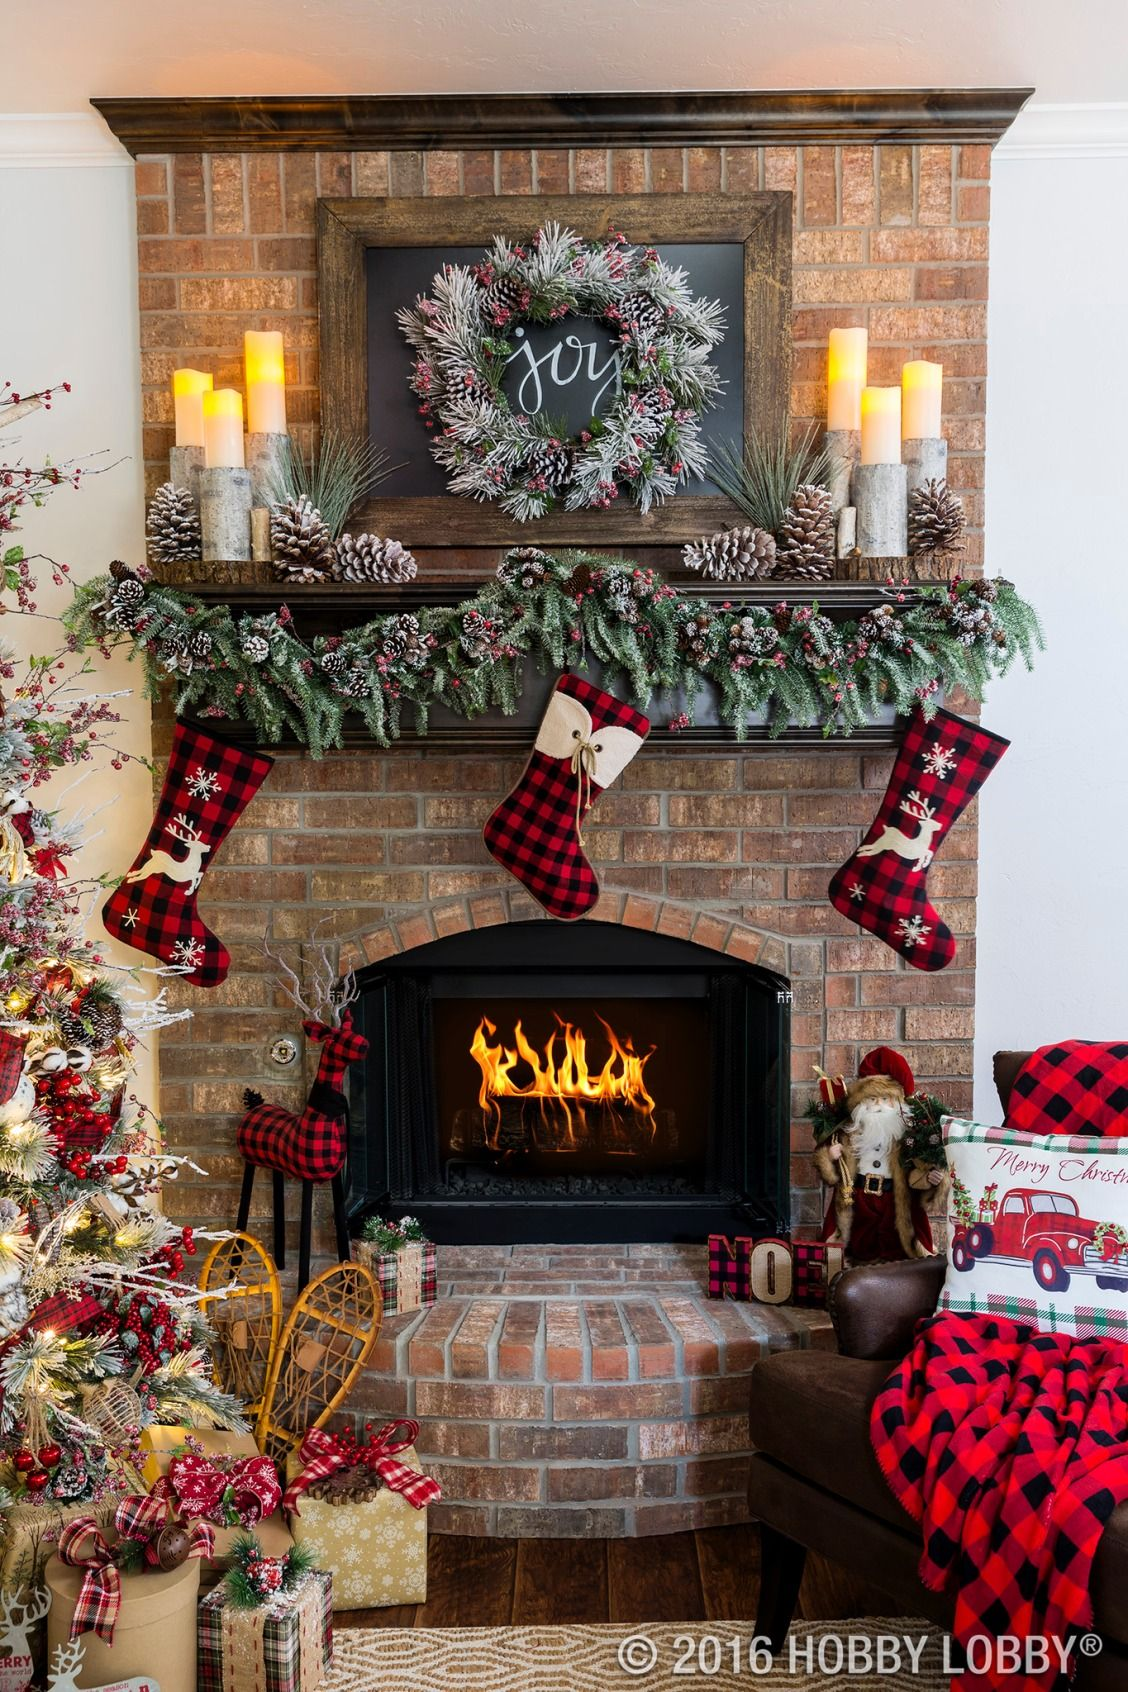 cozy cabin charm meets traditional holiday by coupling warm and rustic accent pieces with elegant christmas decor - Cabin Christmas Decor